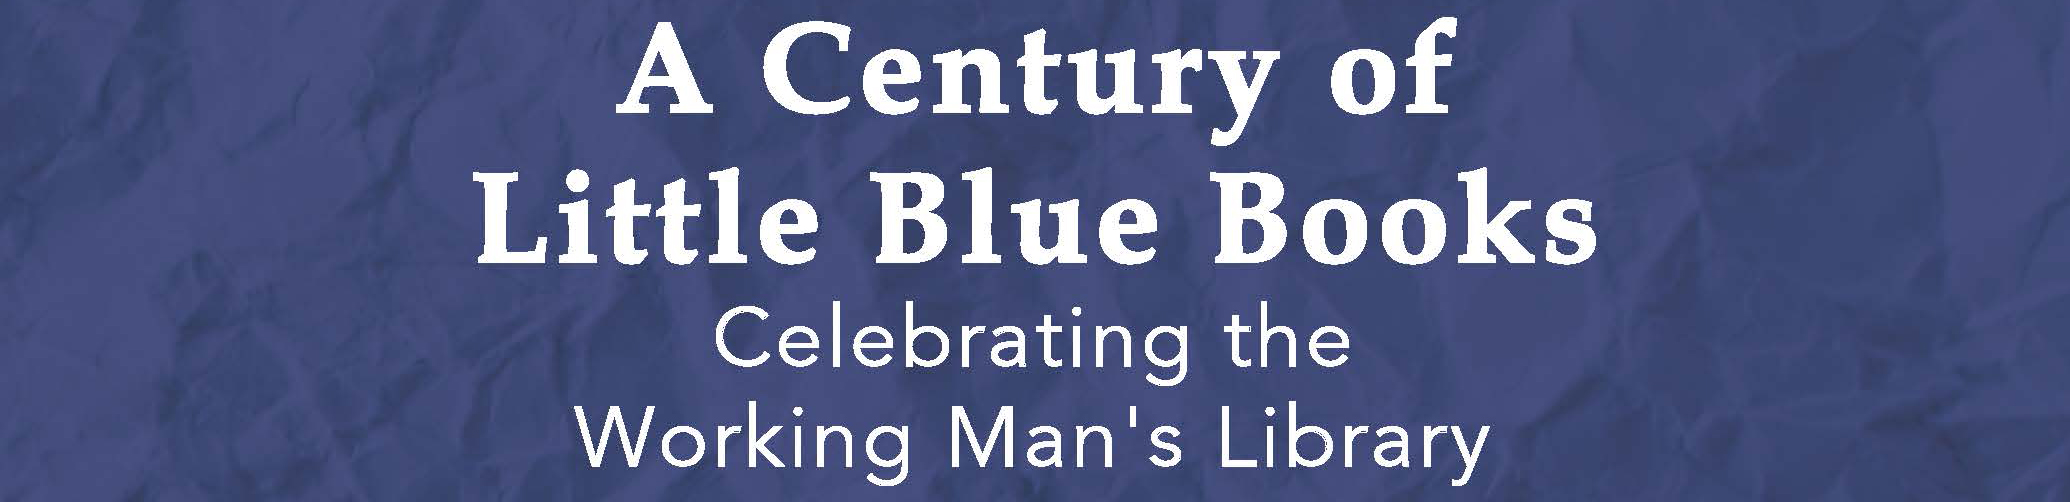 A Century of Little Blue Books